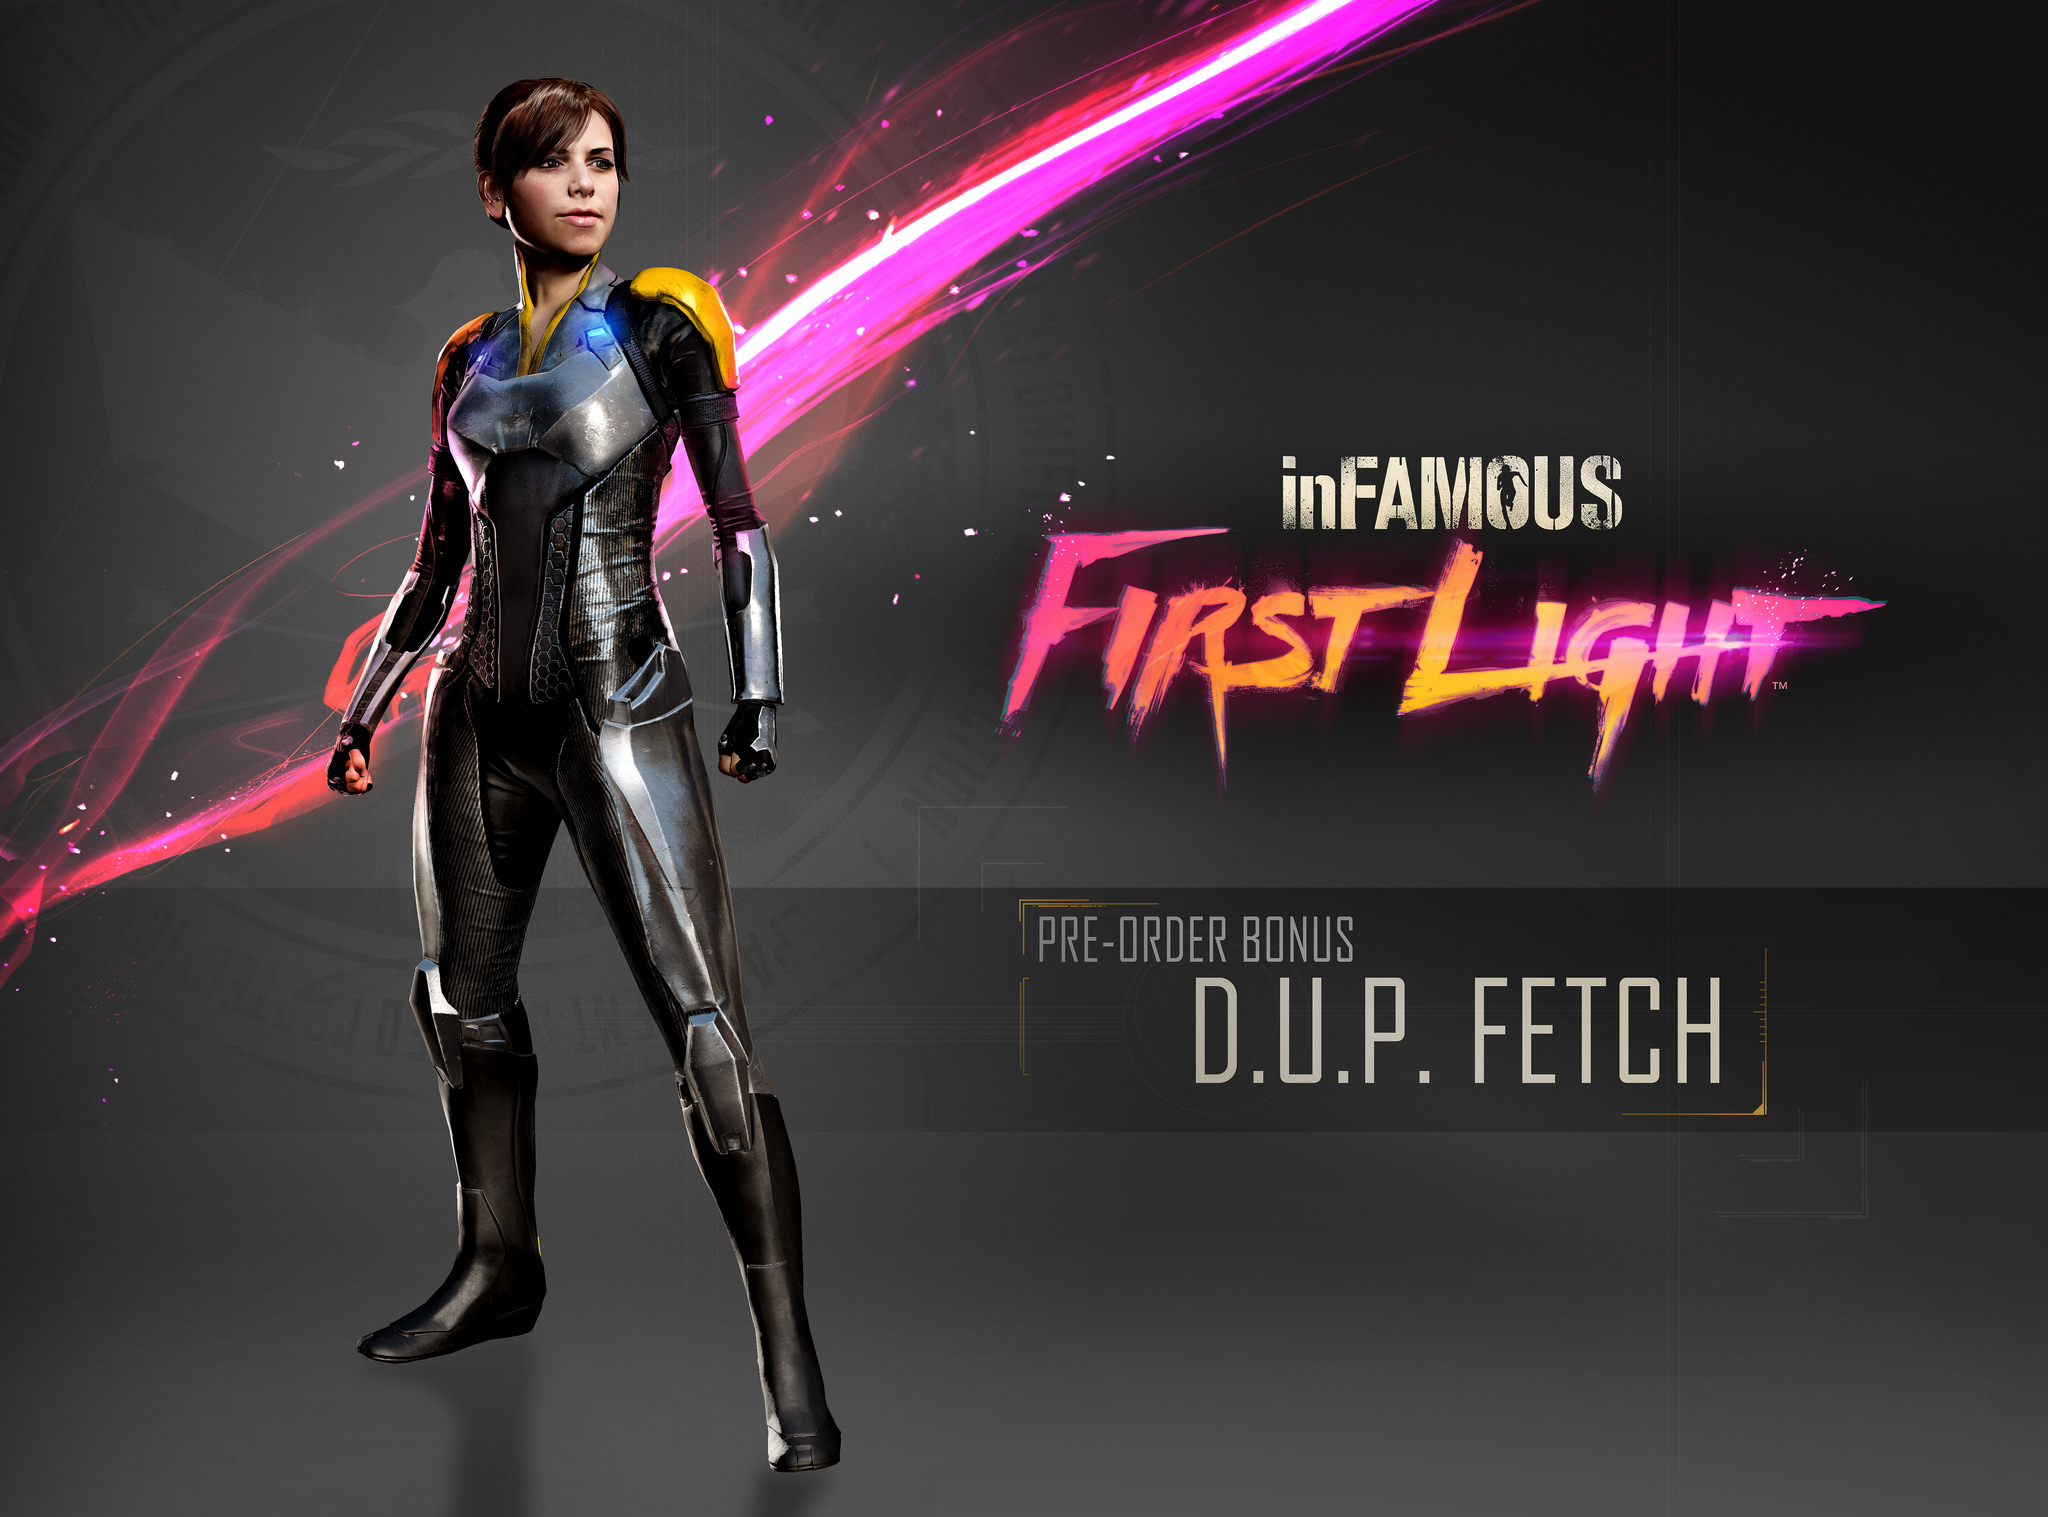 2048x1517 > InFAMOUS: First Light Wallpapers